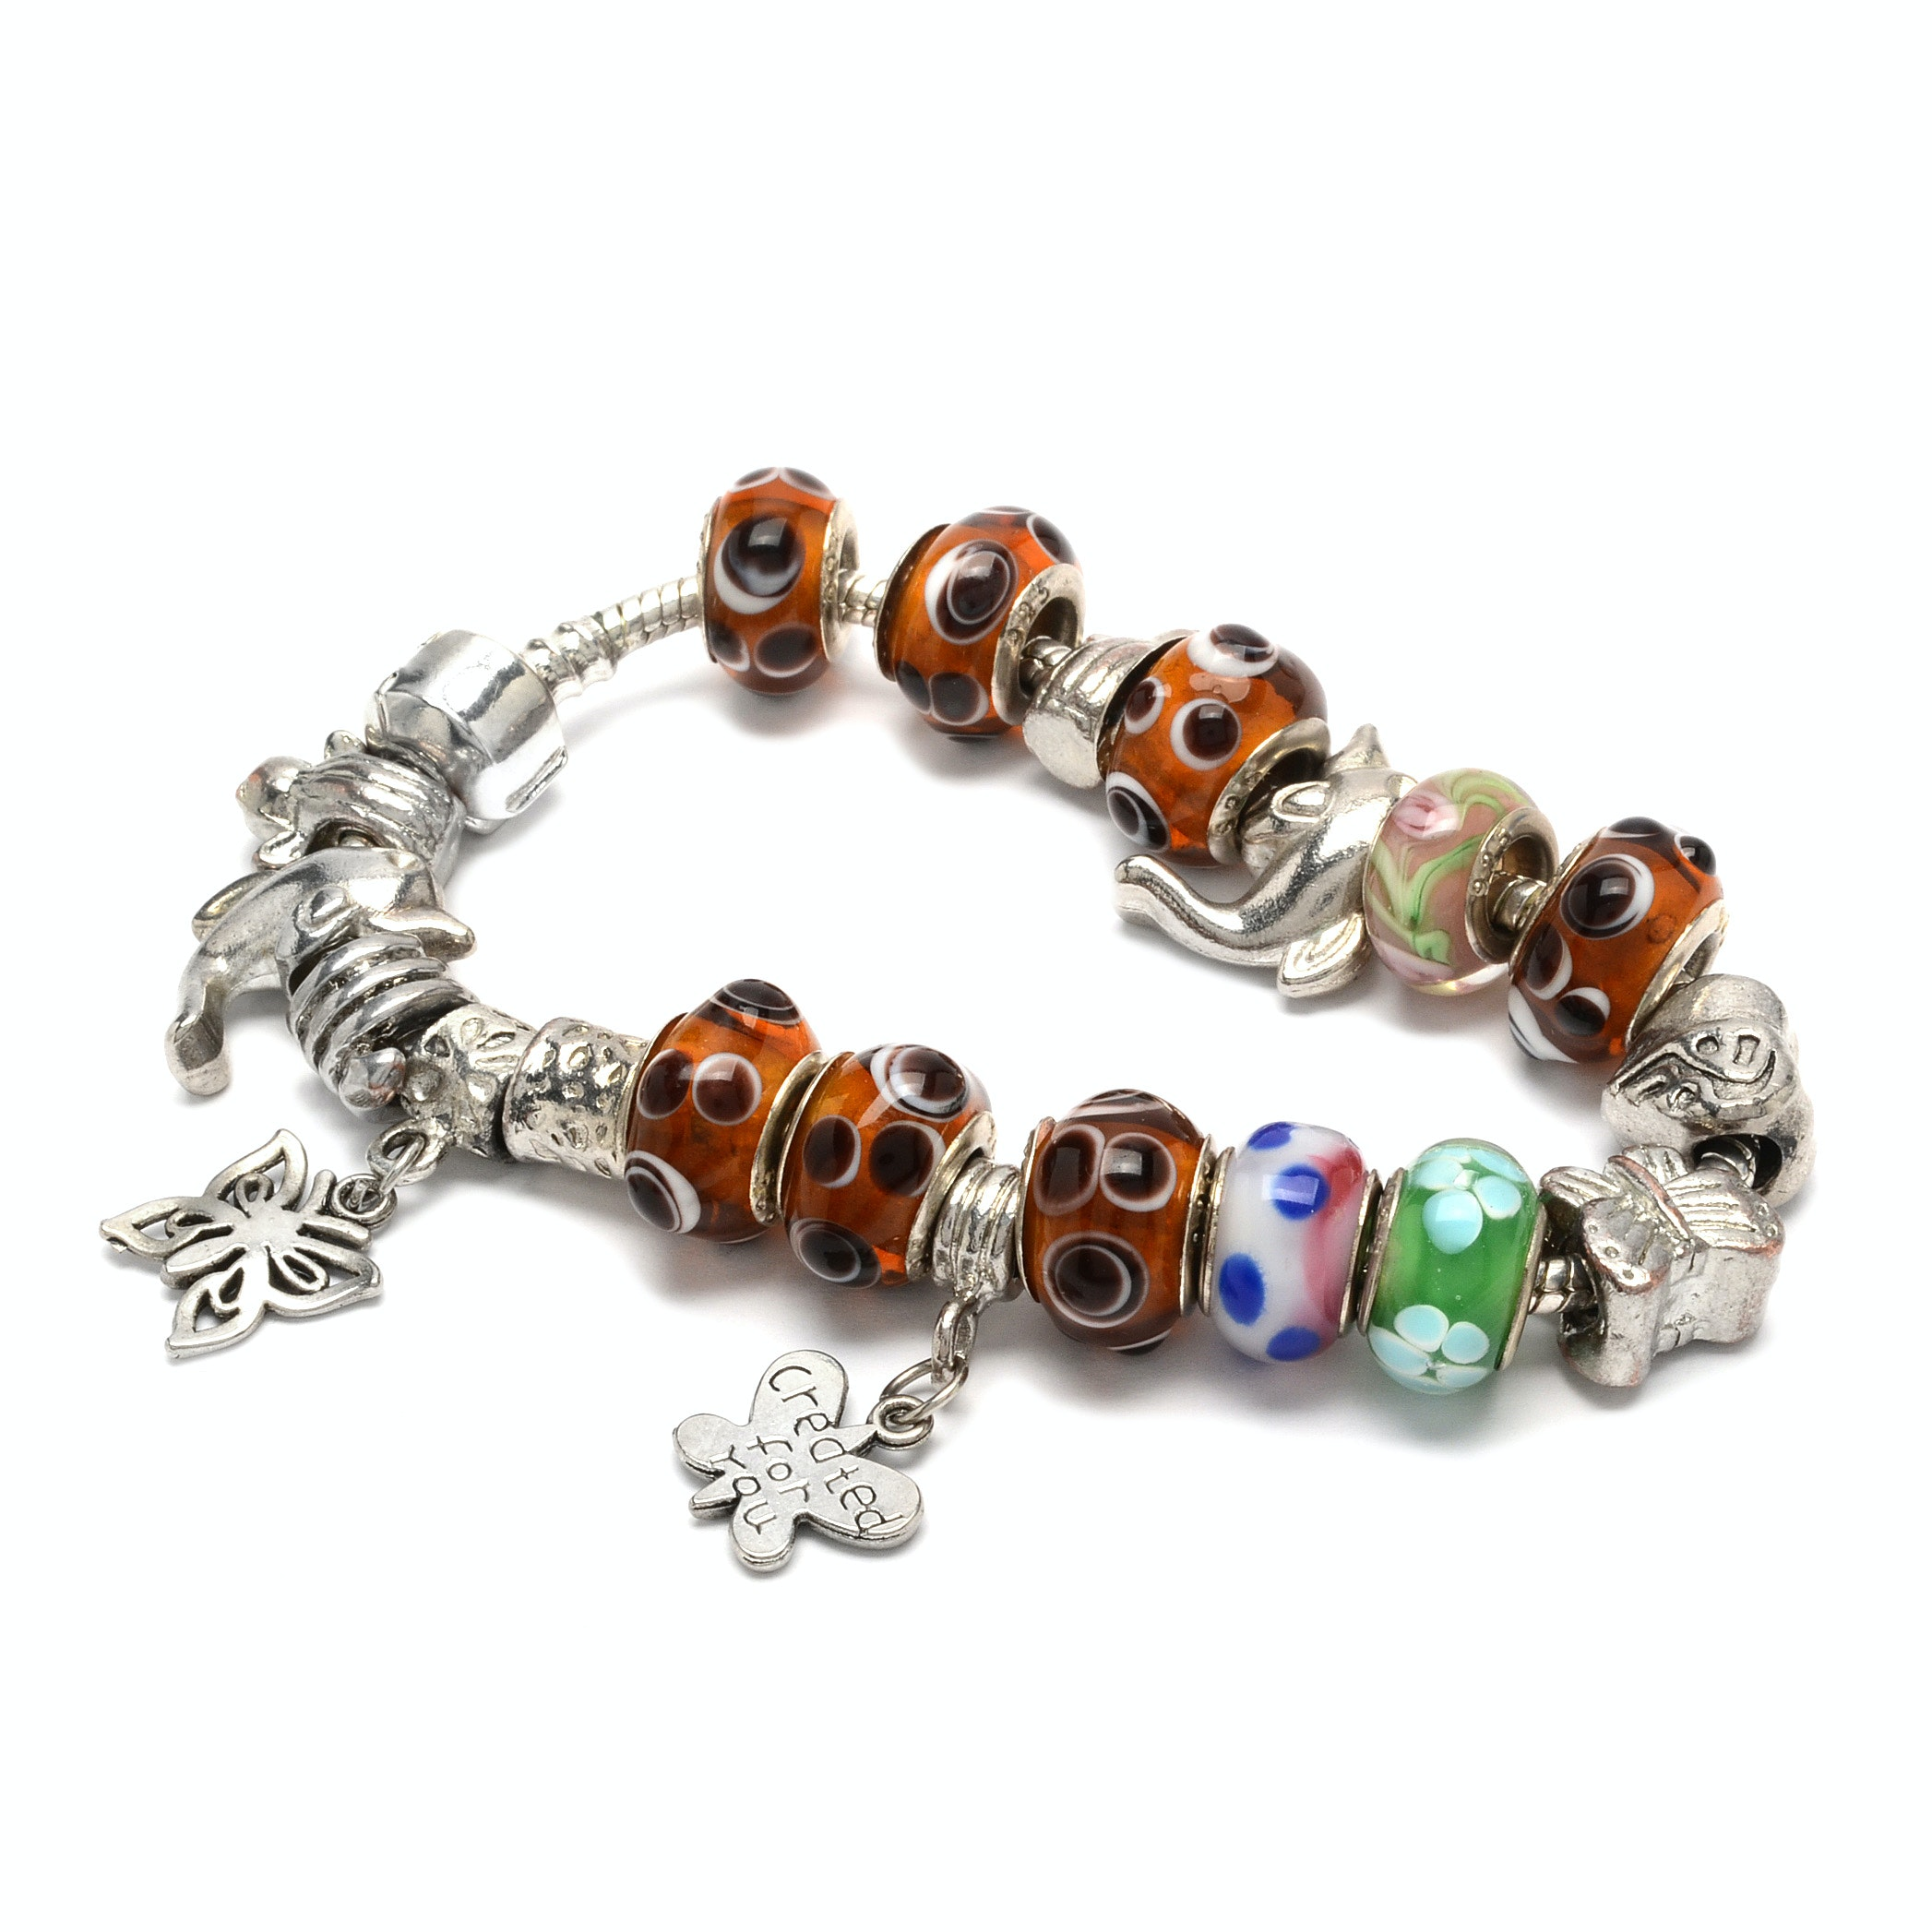 Slide Charm Bracelet and Charms Including Sterling Silver Trimmed Lampwork Beads